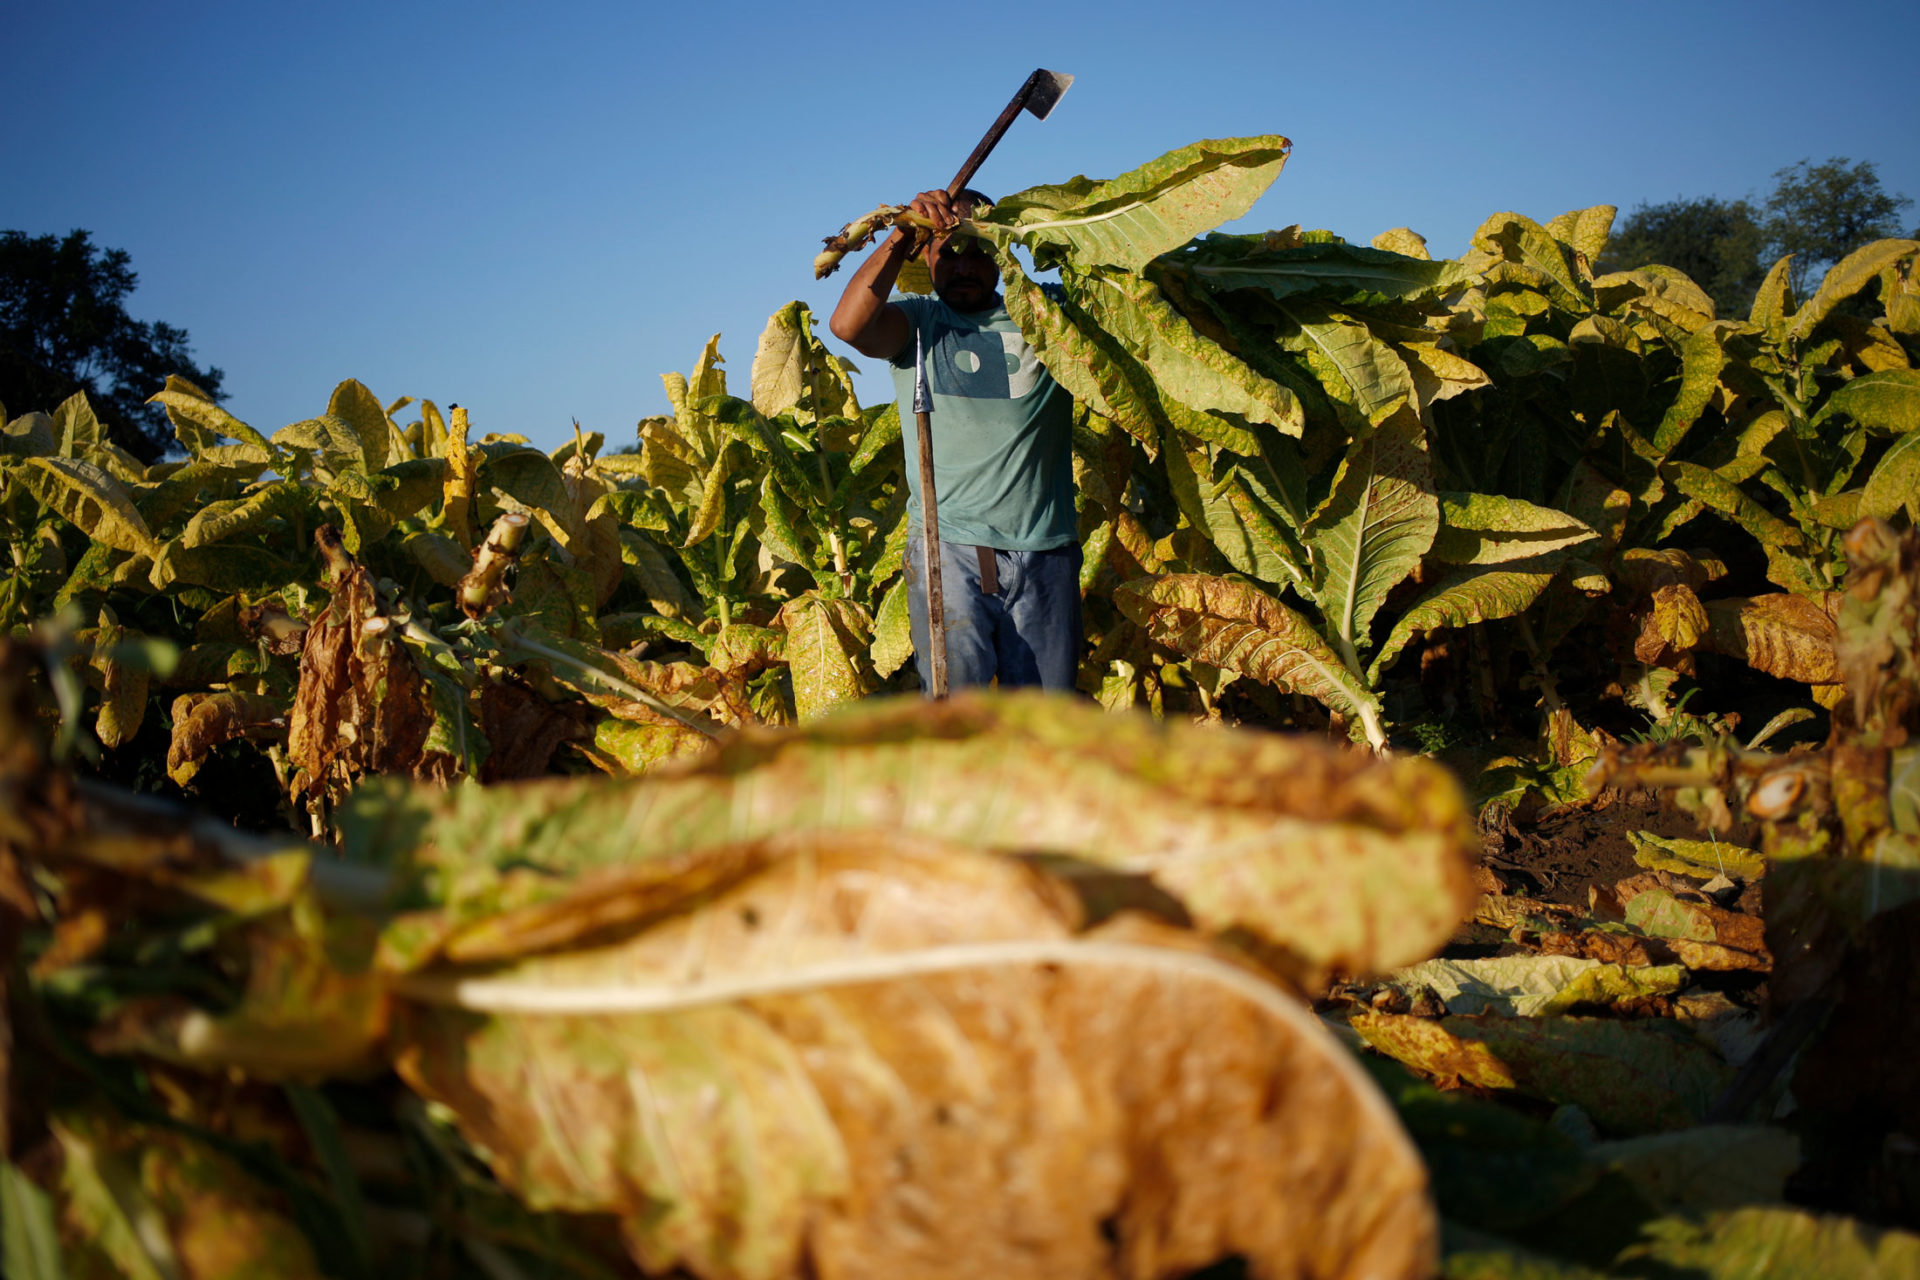 The illicit cigarette trade has already led to the demise of many tobacco farmers across South Africa. Photo: Supplied/Food For Mzansi